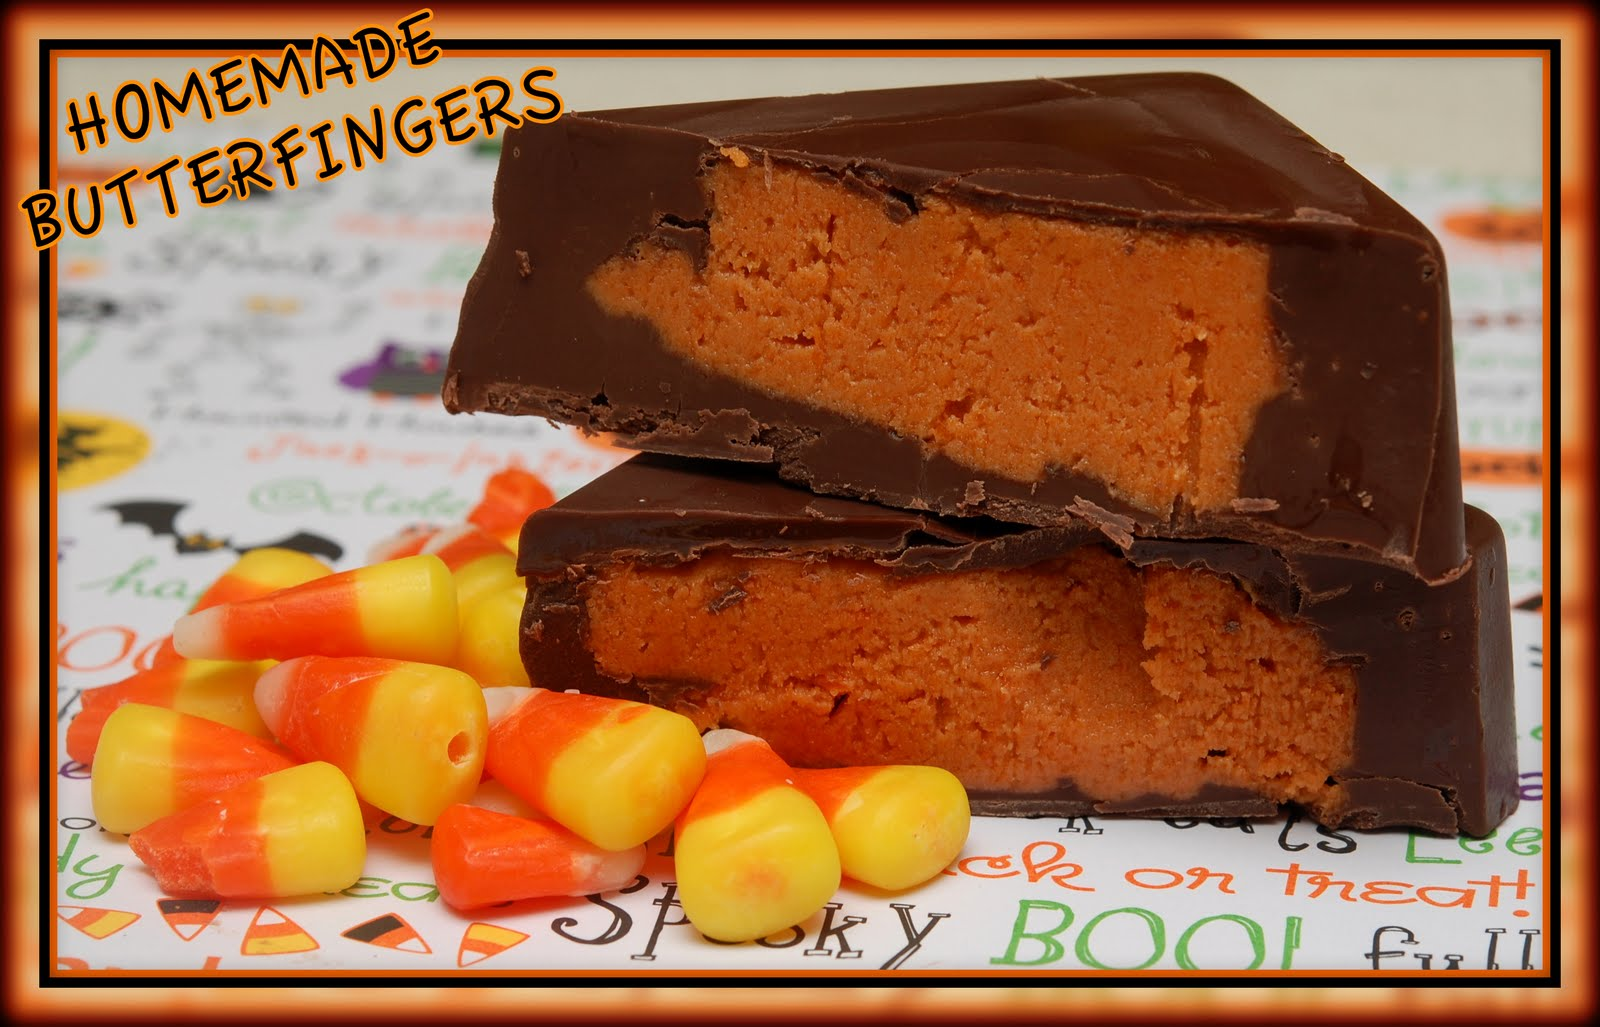 Hugs & CookiesXOXO: HOMEMADE BUTTERFINGER CANDY BARS!